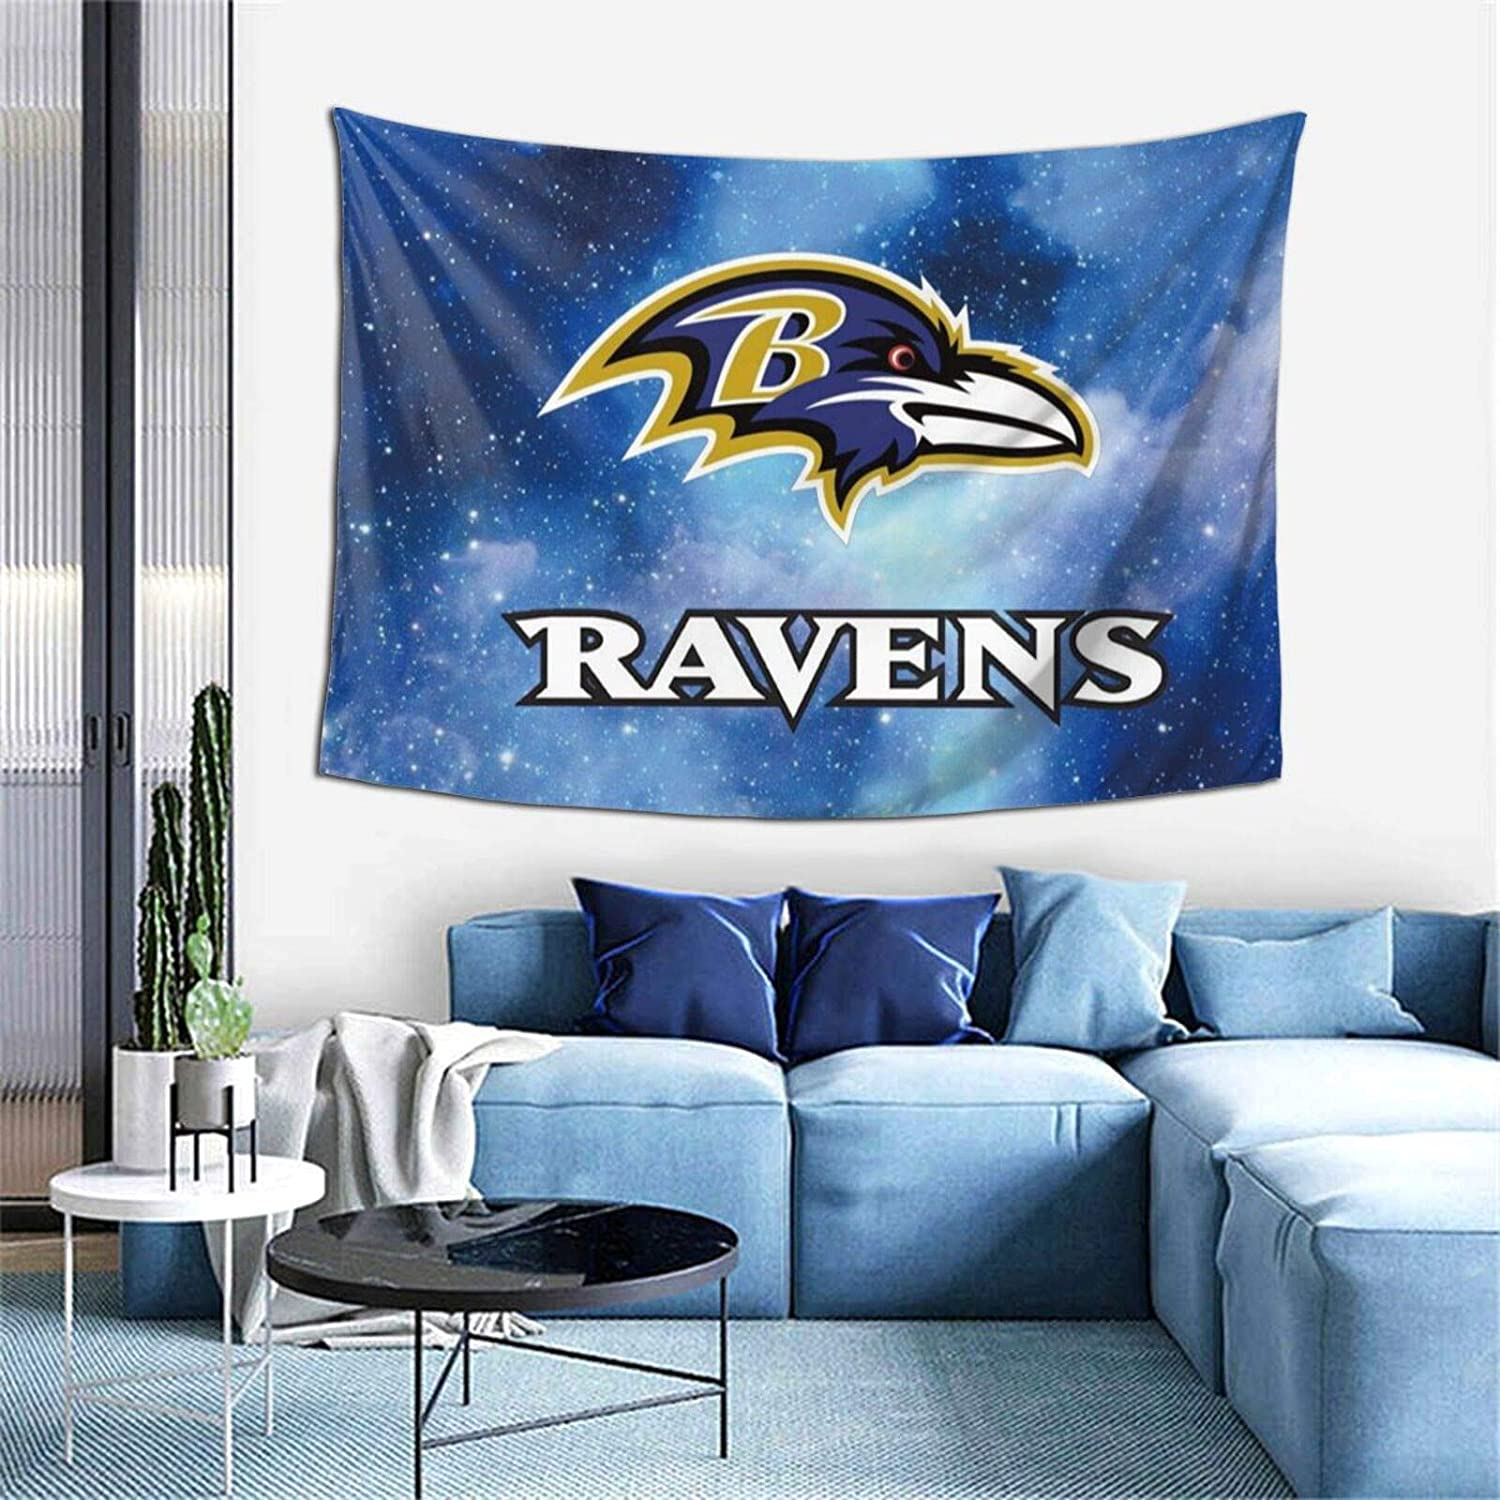 Baltimore Ravens Tapestry Wall Hanging for Living Room Bedroom Dorm Decor 59x59 inch